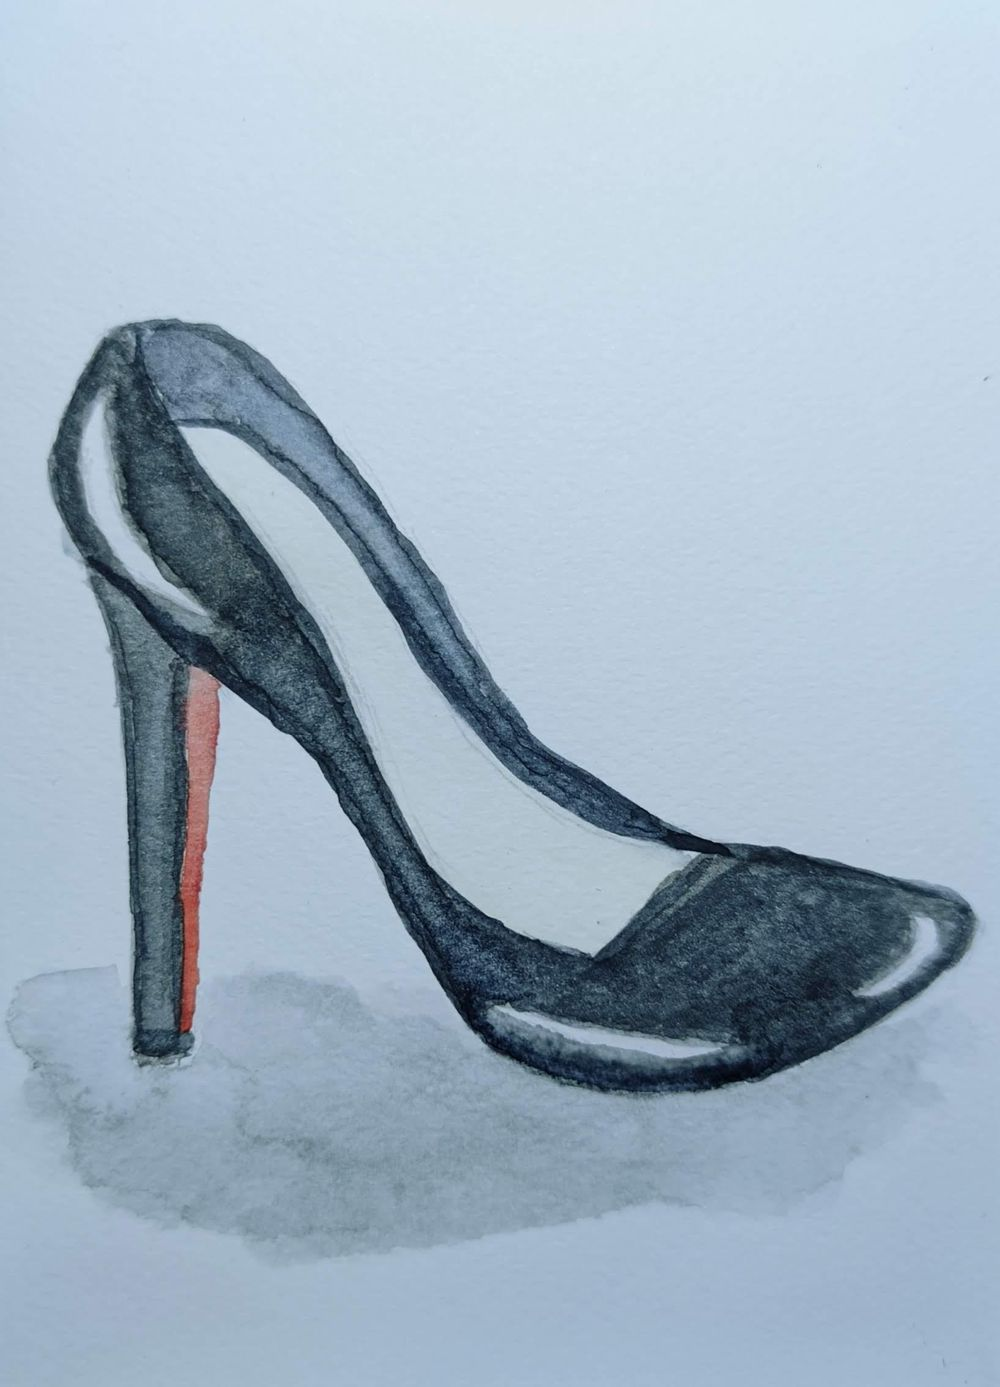 Leather Shoe - image 1 - student project